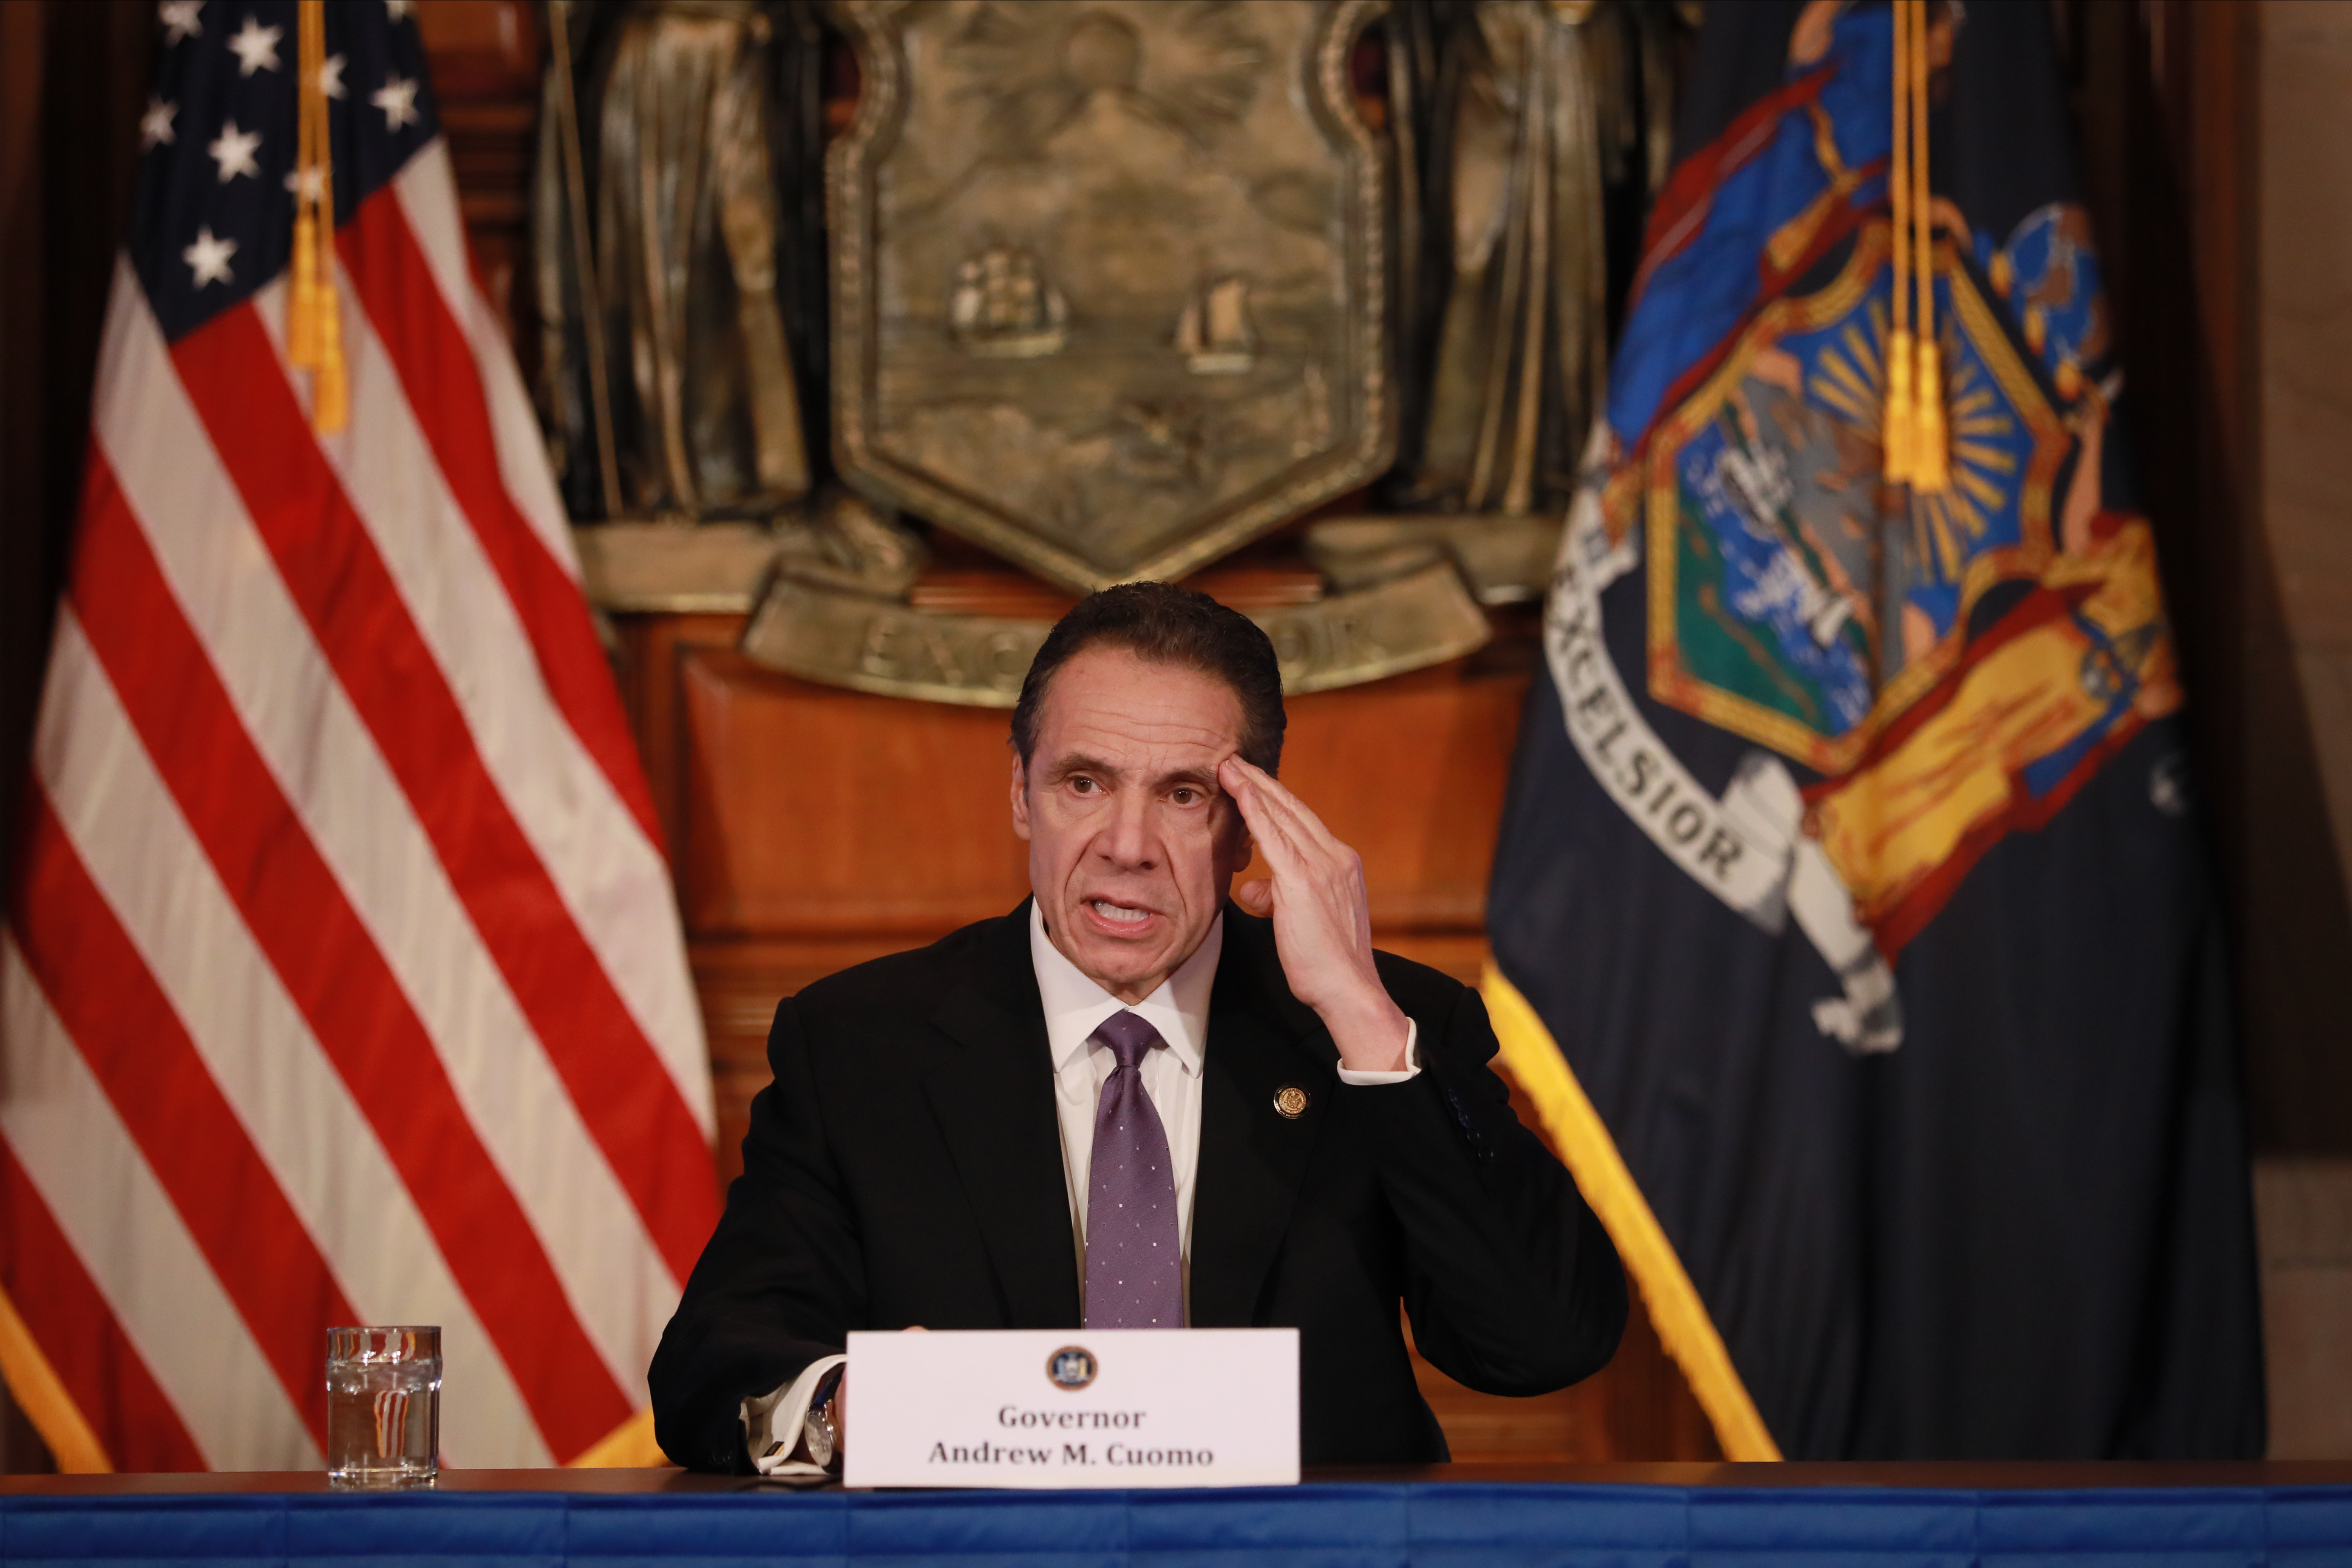 New York Governor Andrew Cuomo gives his a press briefing about the coronavirus crisis on April 17, 2020 in Albany, New York. (Photo by Matthew Cavanaugh/Getty Images)